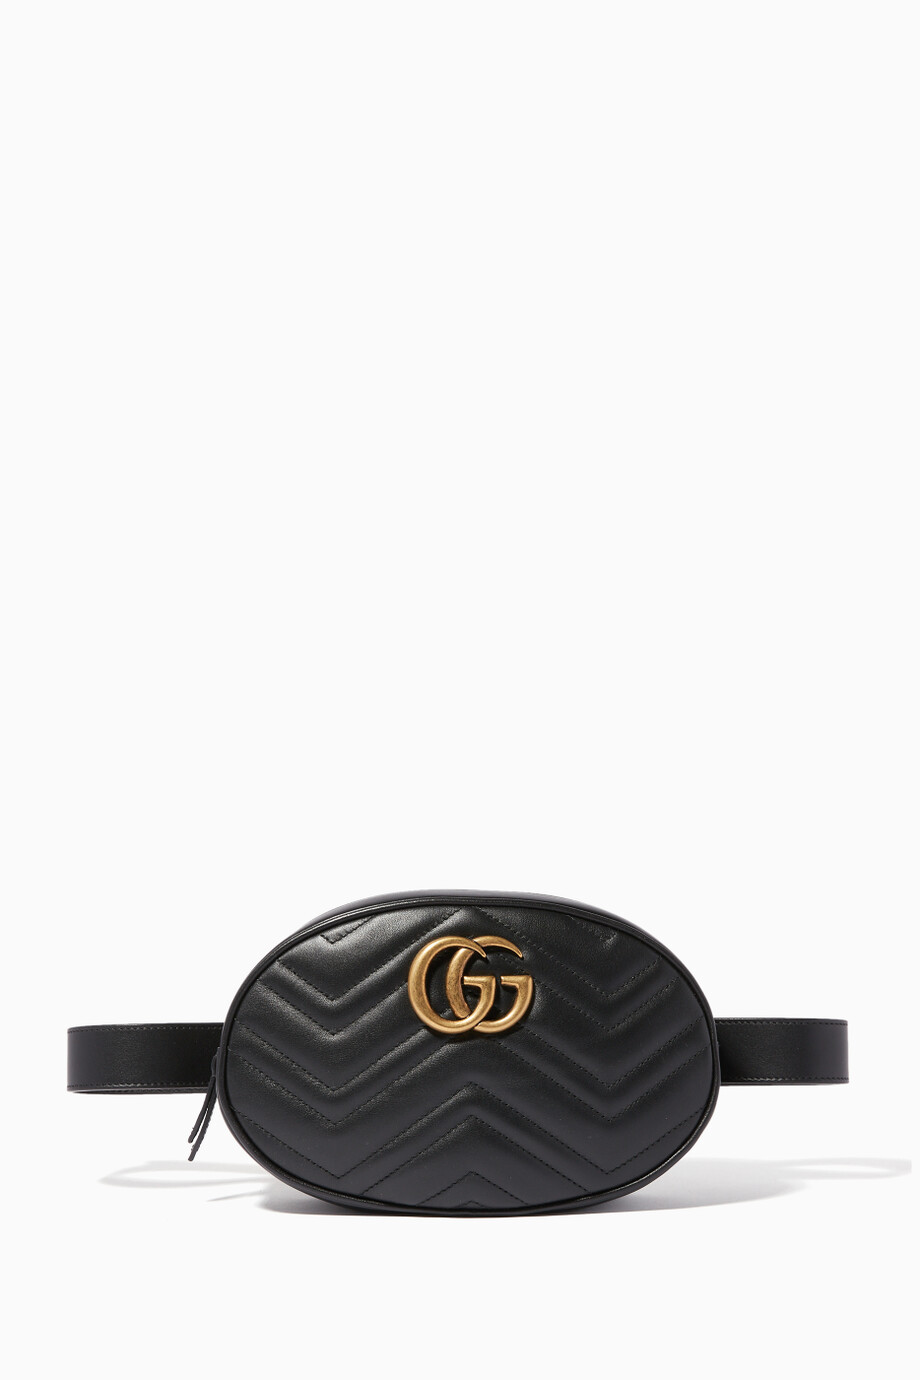 f9b604e92677 Shop Gucci Black Black Medium GG Marmont Matelassé Belt Bag for ...